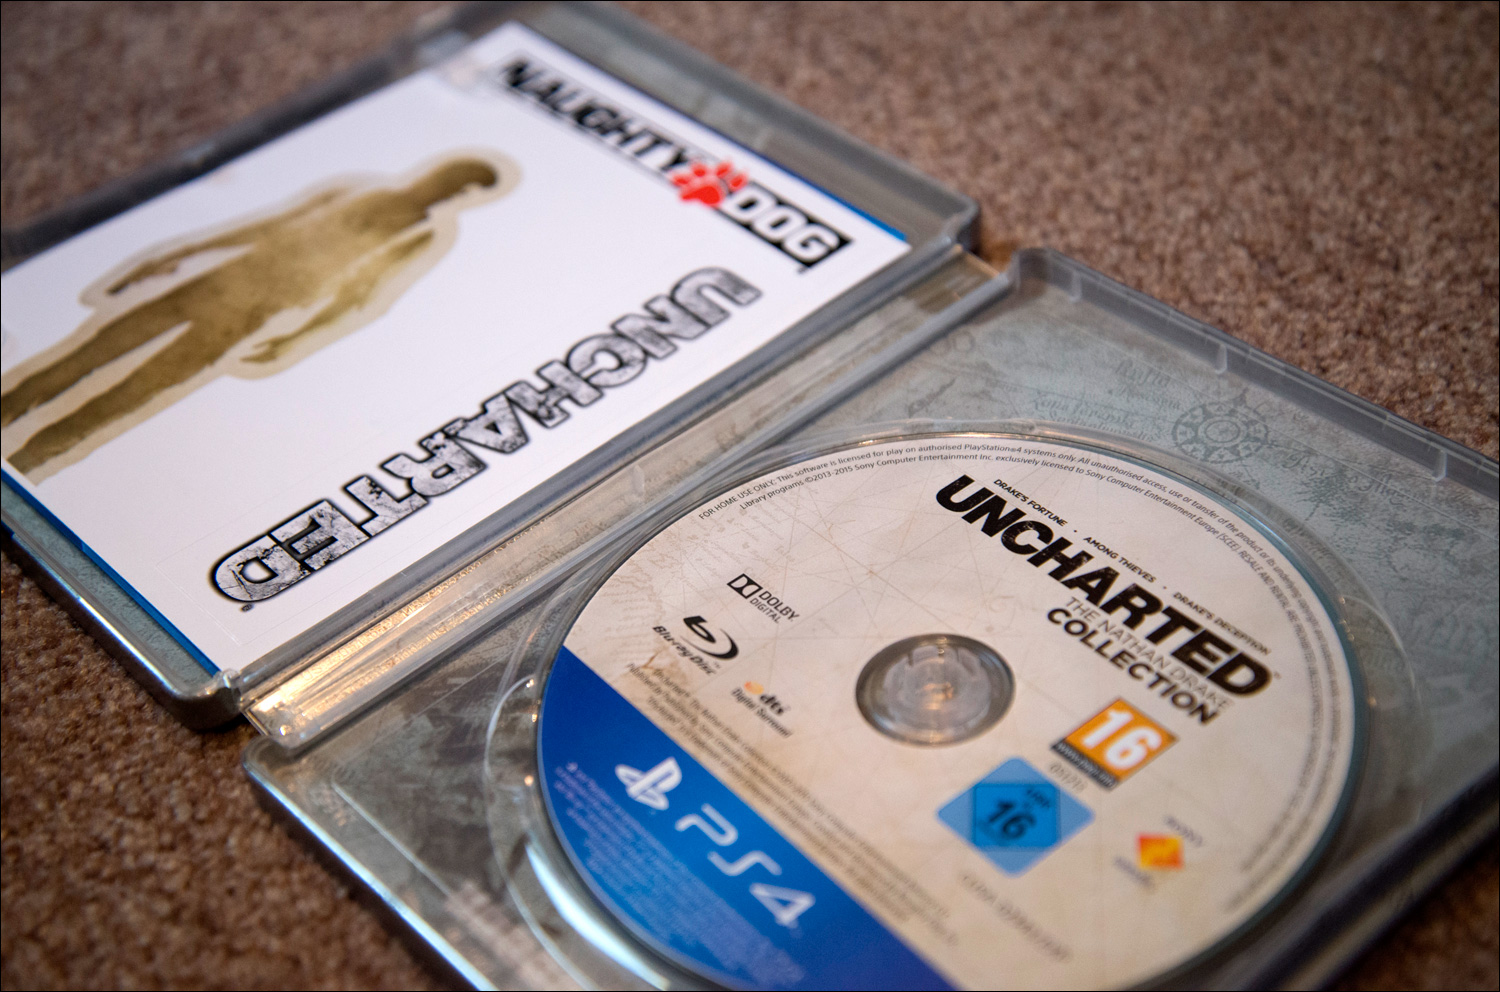 Uncharted-The-Nathan-Drake-Collection-Special-Edition-Steelbook-Contents